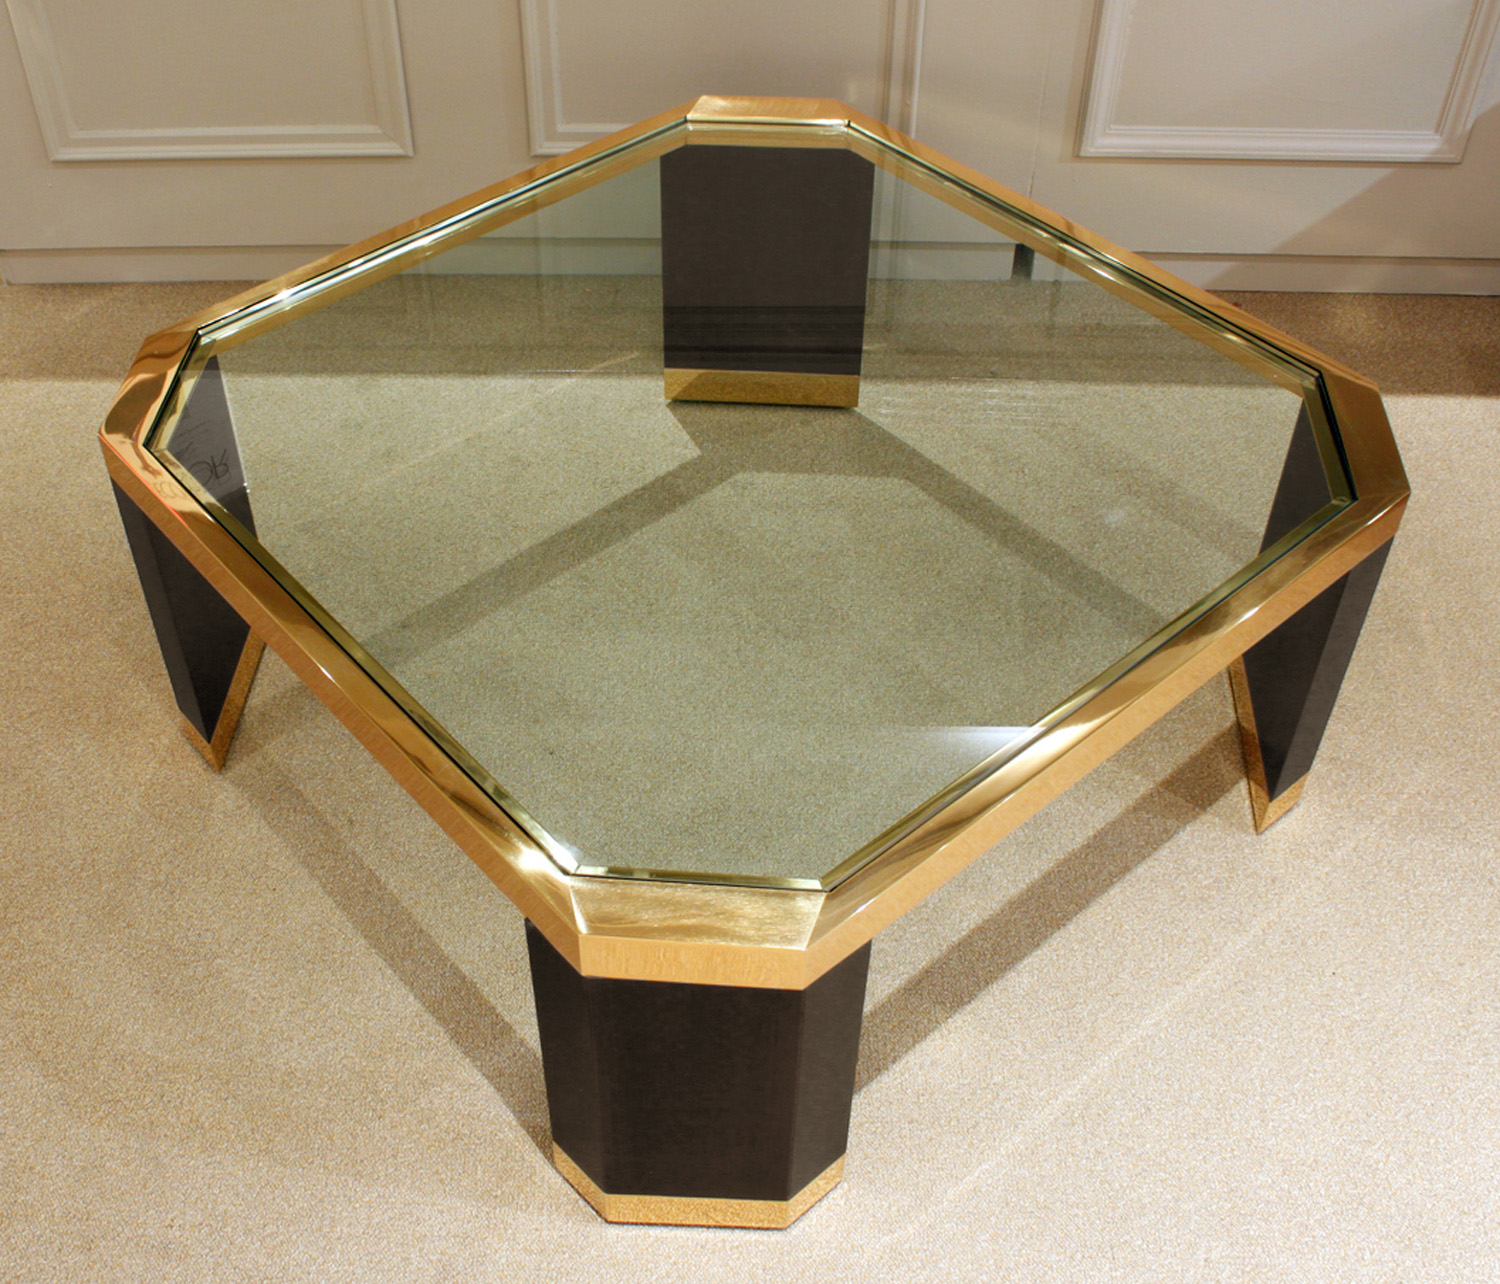 Seff 85 gunmetalbrassglass coffeetable86 hires detail3.jpg